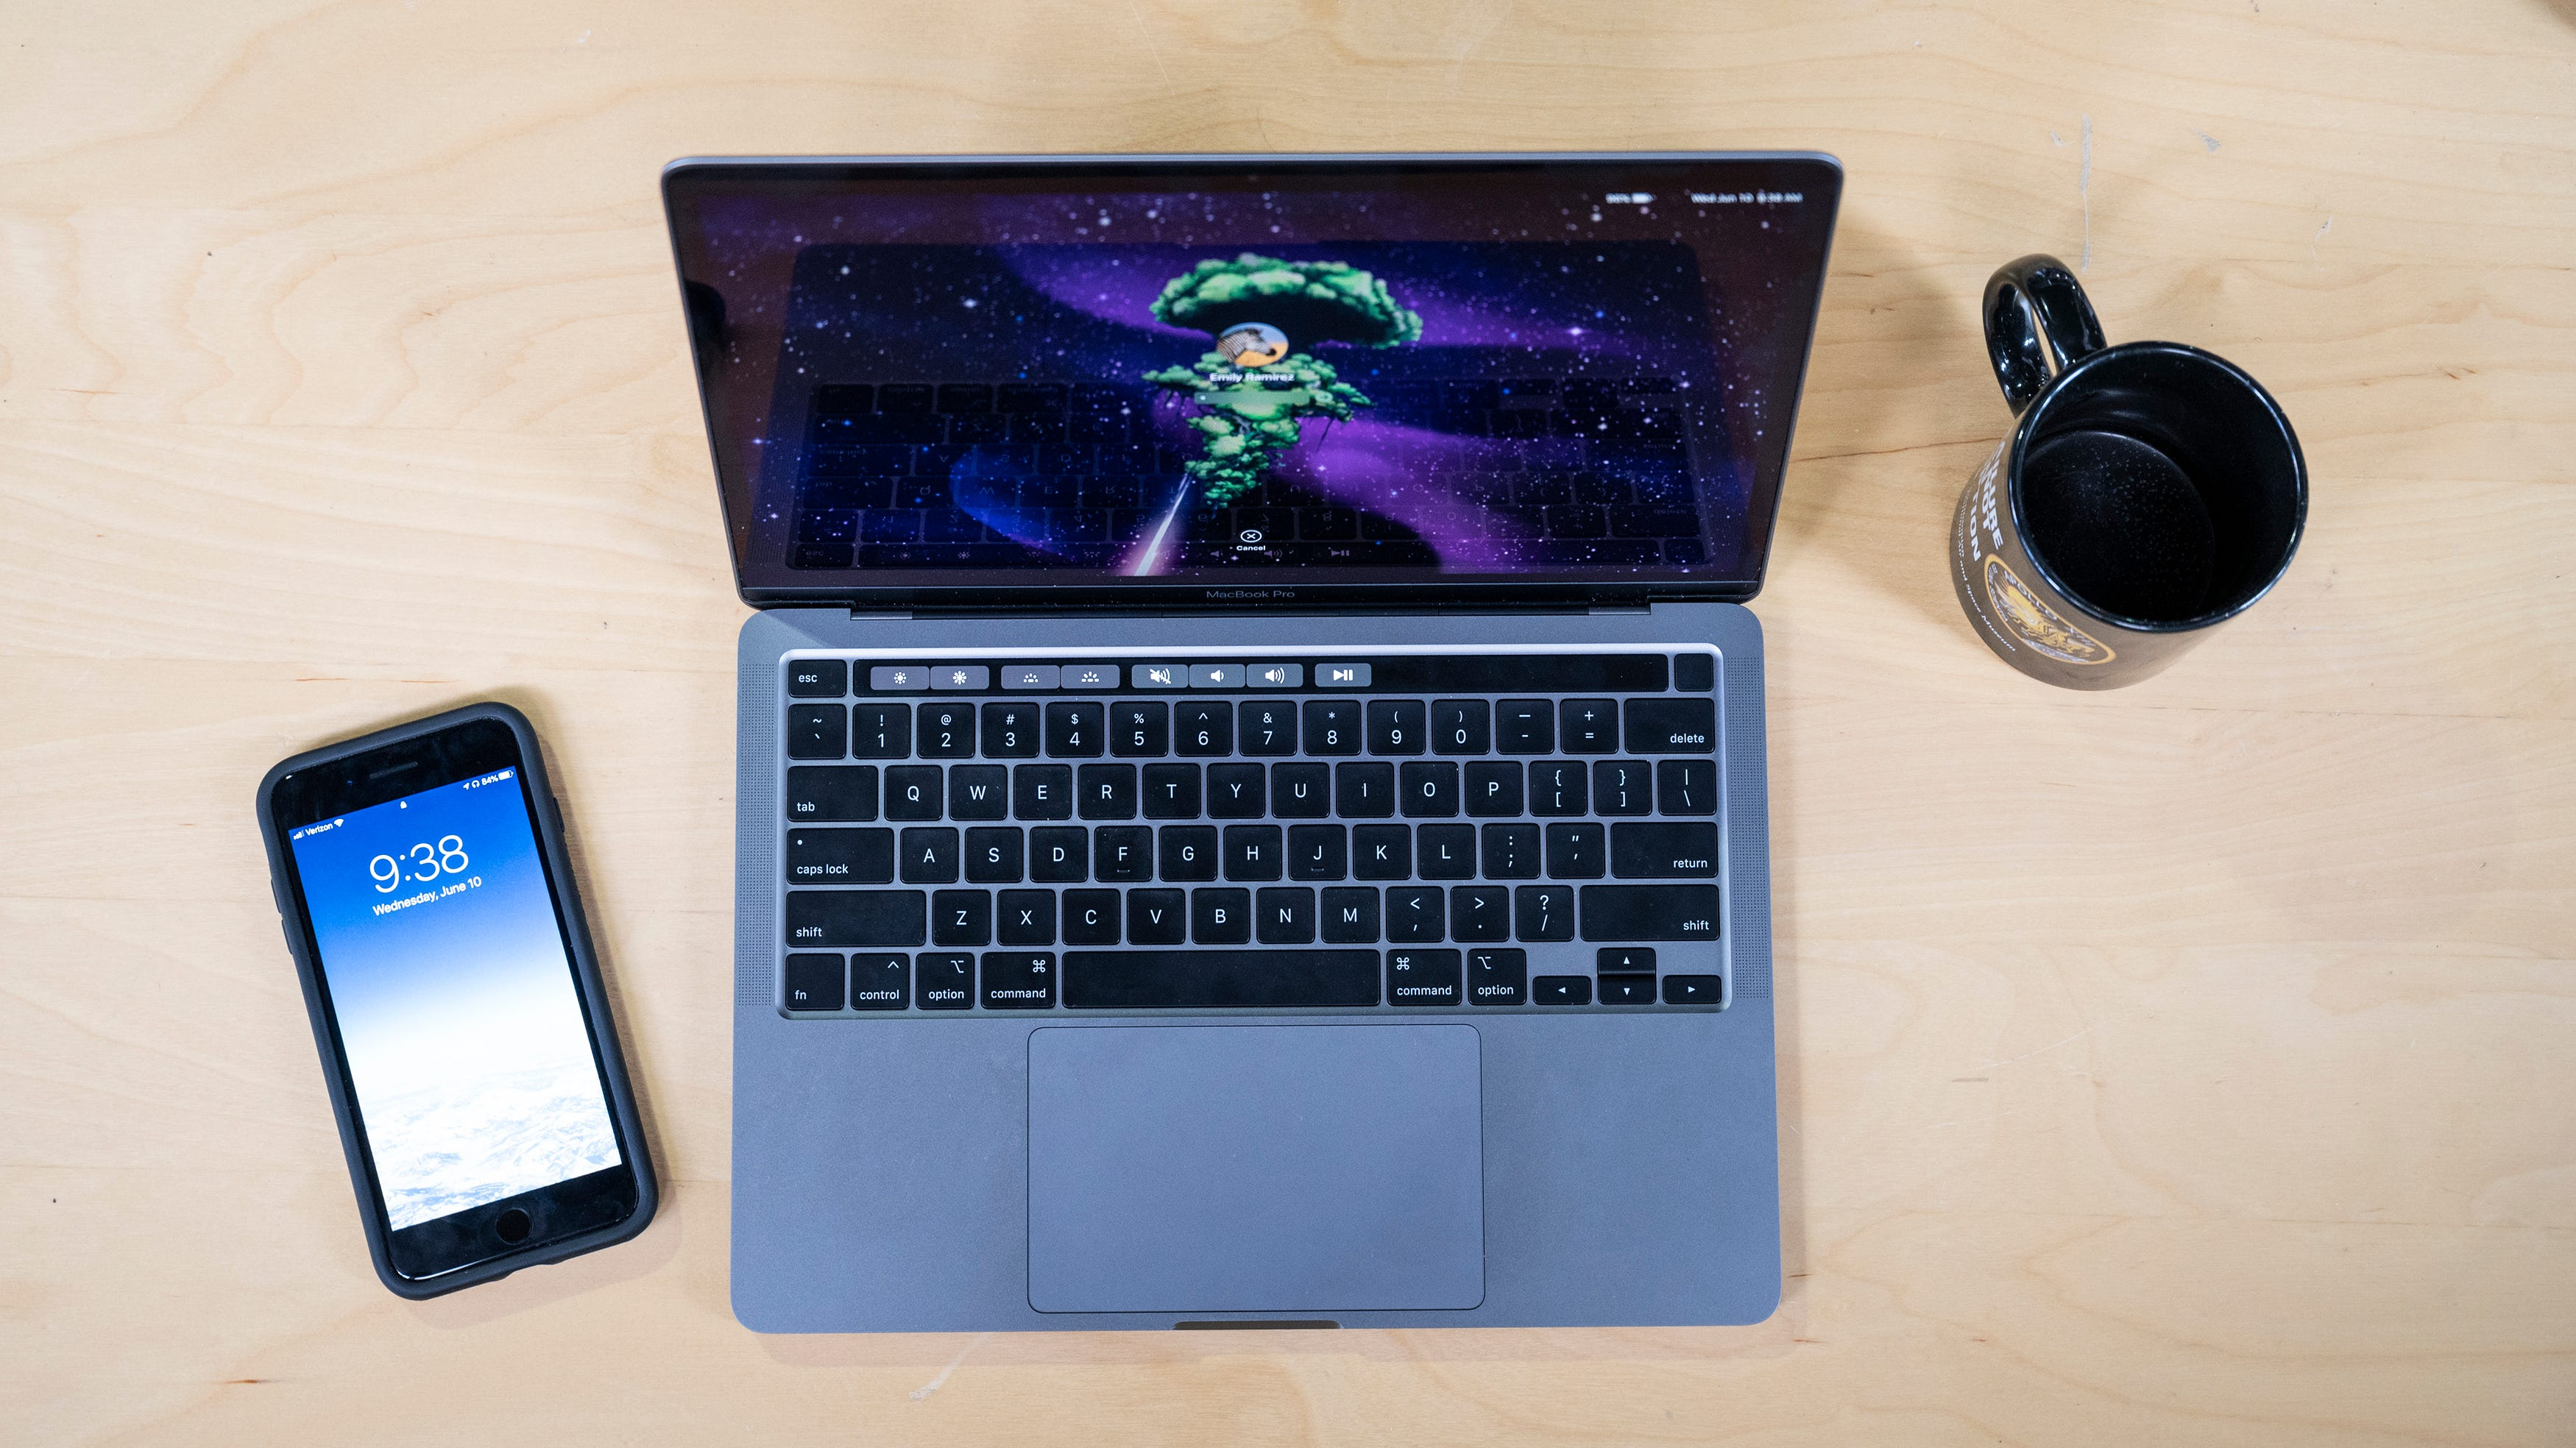 Black Friday 2020: Save up to $550 on Apple MacBook Pro and MacBook Air laptops right now